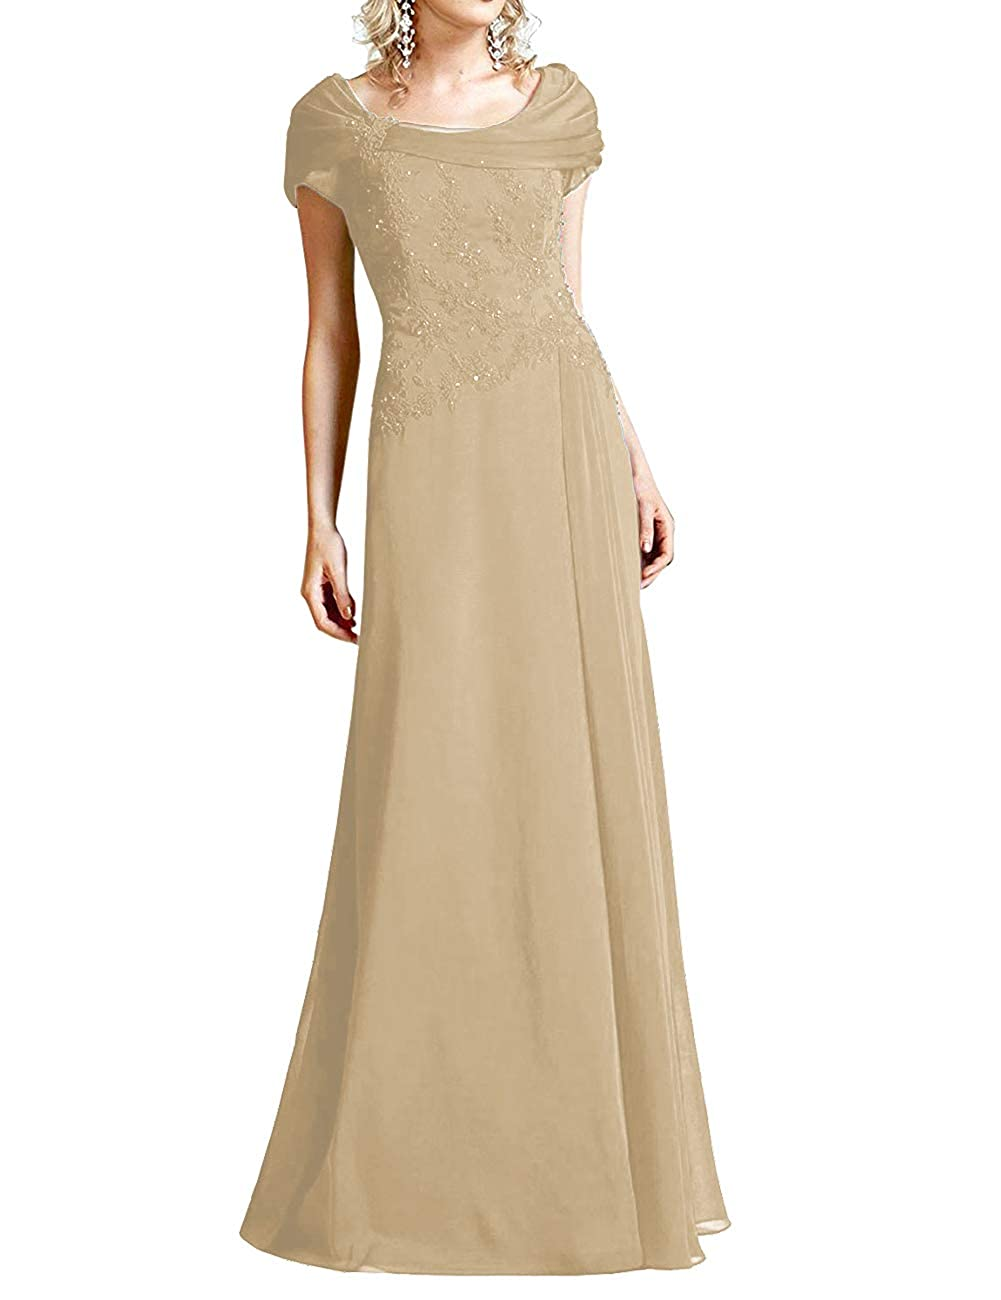 Champagne H.S.D Mother of The Bride Dresses Lace Formal Gowns Long Evening Dress Prom Wrap Shawl